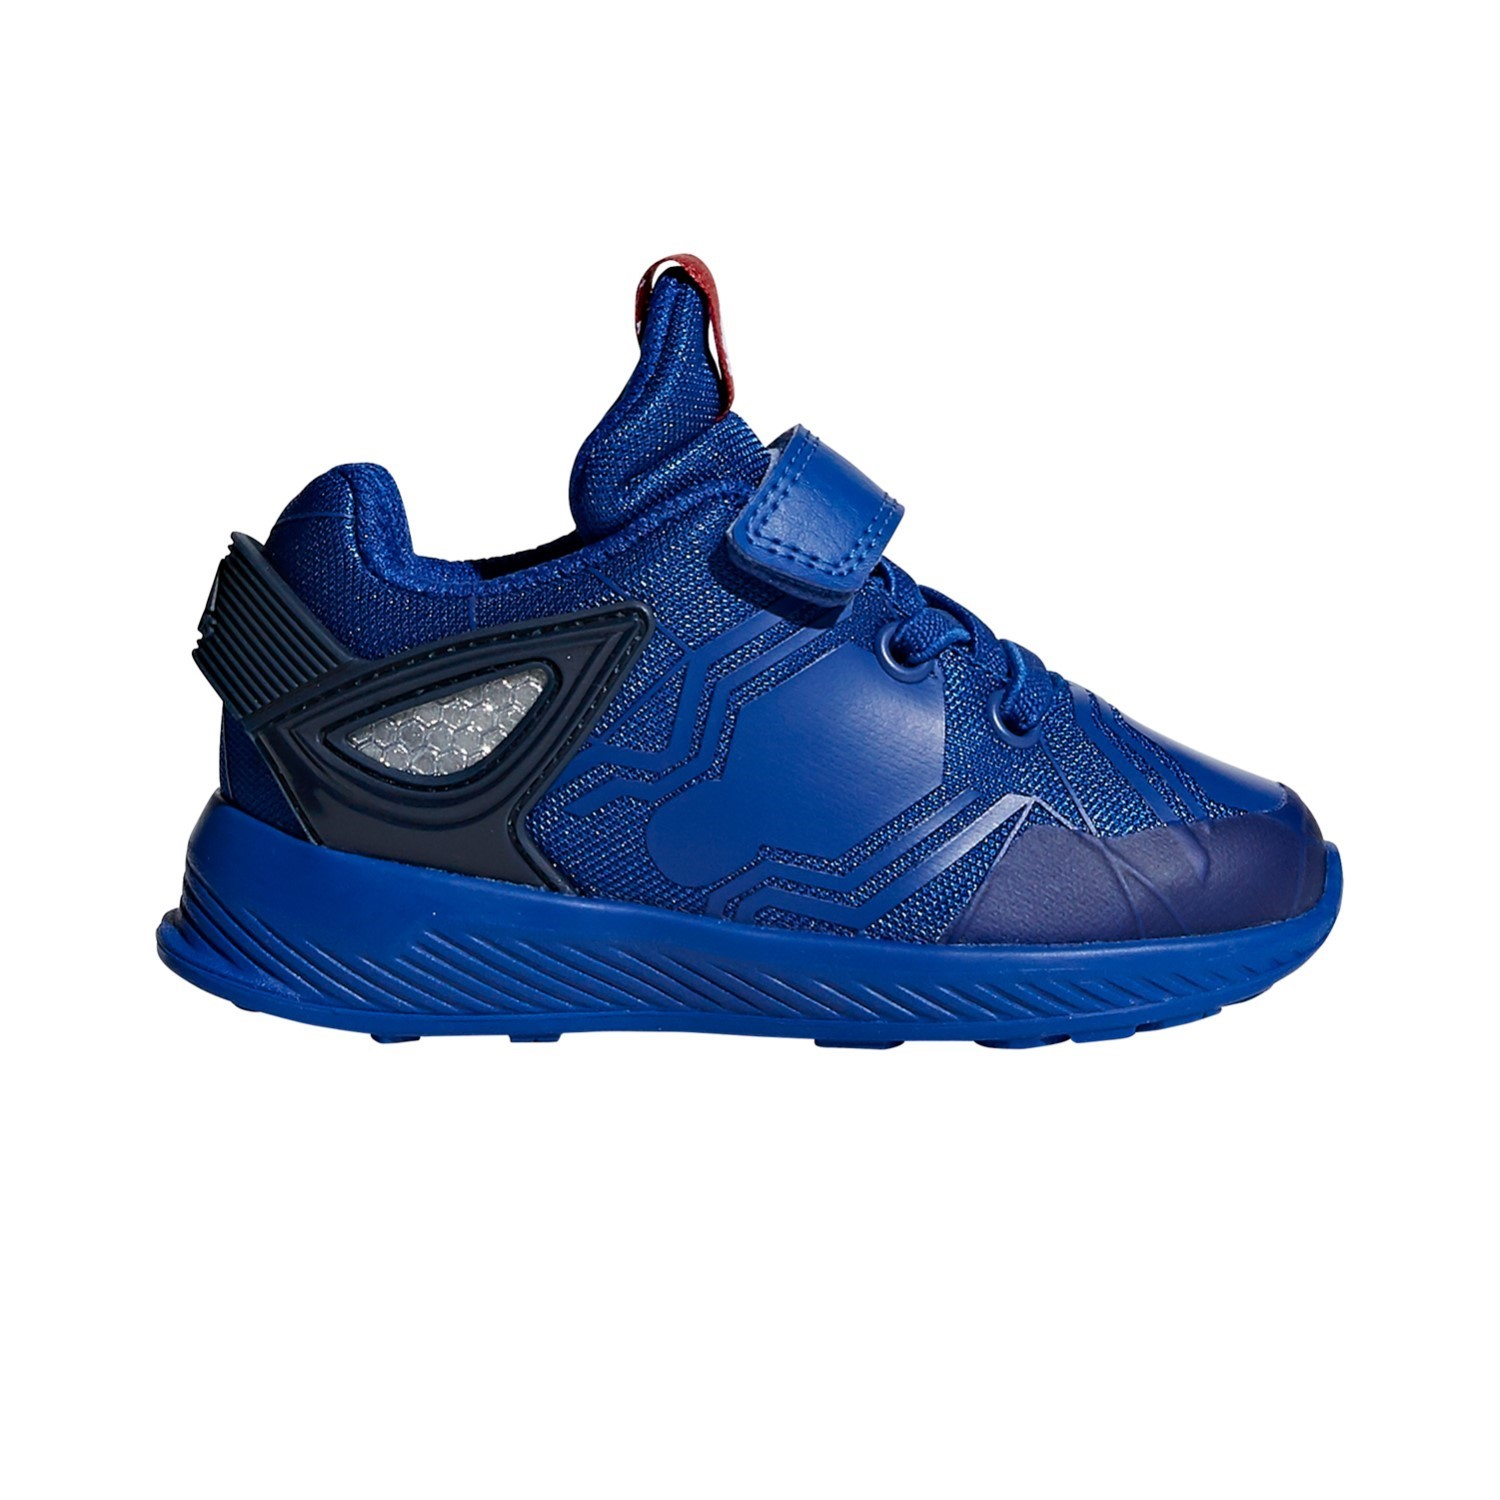 be87558dc9a1 Adidas Avengers Spider-Man RapidaRun - Toddler Boys Running Shoes - Royal  Blue Scarlet